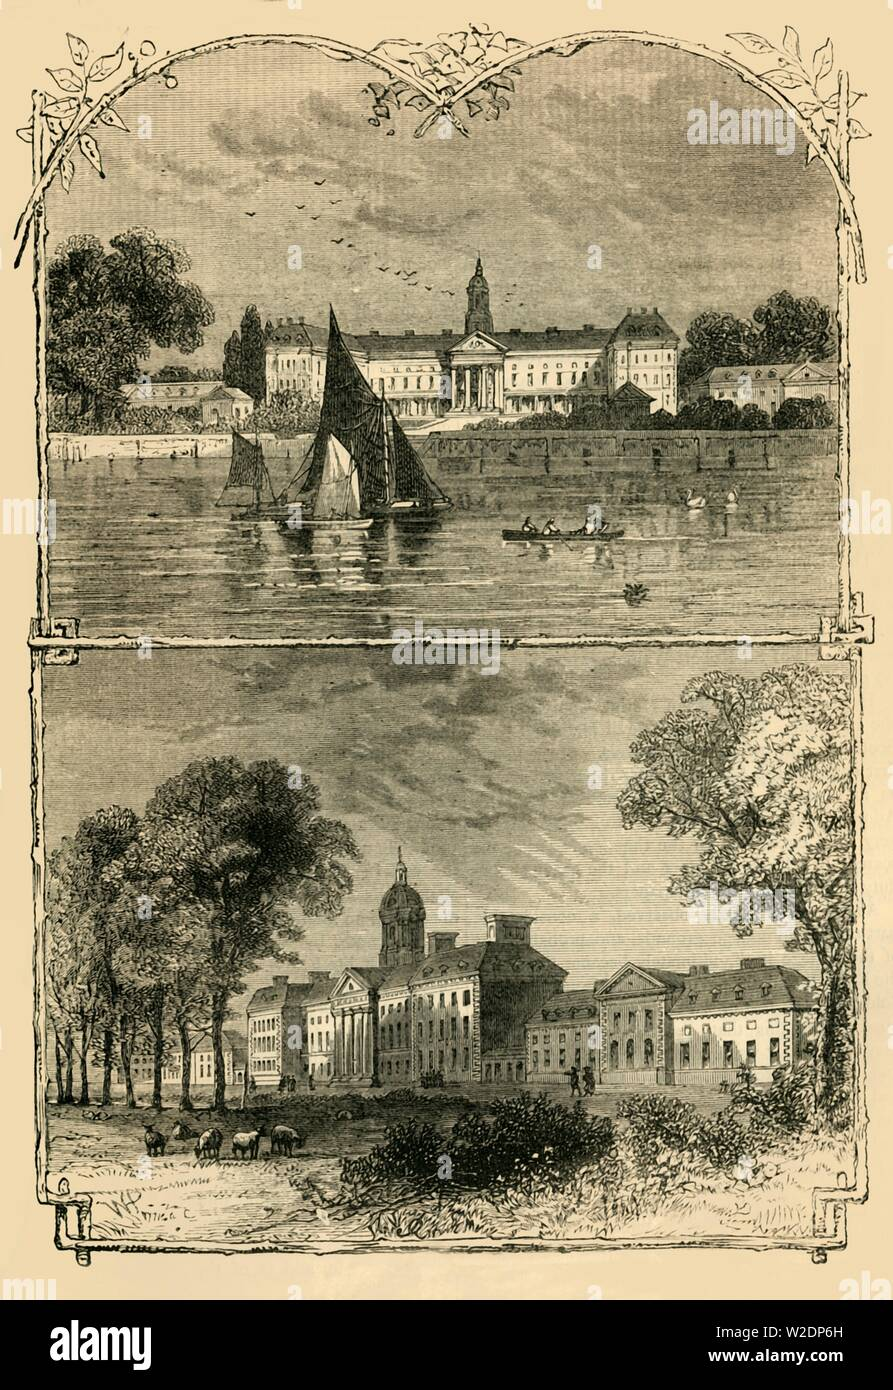 """'Chelsea Hospital', c1876.  Royal Hospital Chelsea is a retirement and nursing home for veterans of the British Army, founded by King Charles II in 1682,  the gardens are Grade II listed .  From """"Old and New London: A Narrative of Its History, Its People, and Its Places. The Western and Northern Studies"""", by Edward Walford. [Cassell, Petter, Galpin & Co., London, Paris & New York] - Stock Image"""